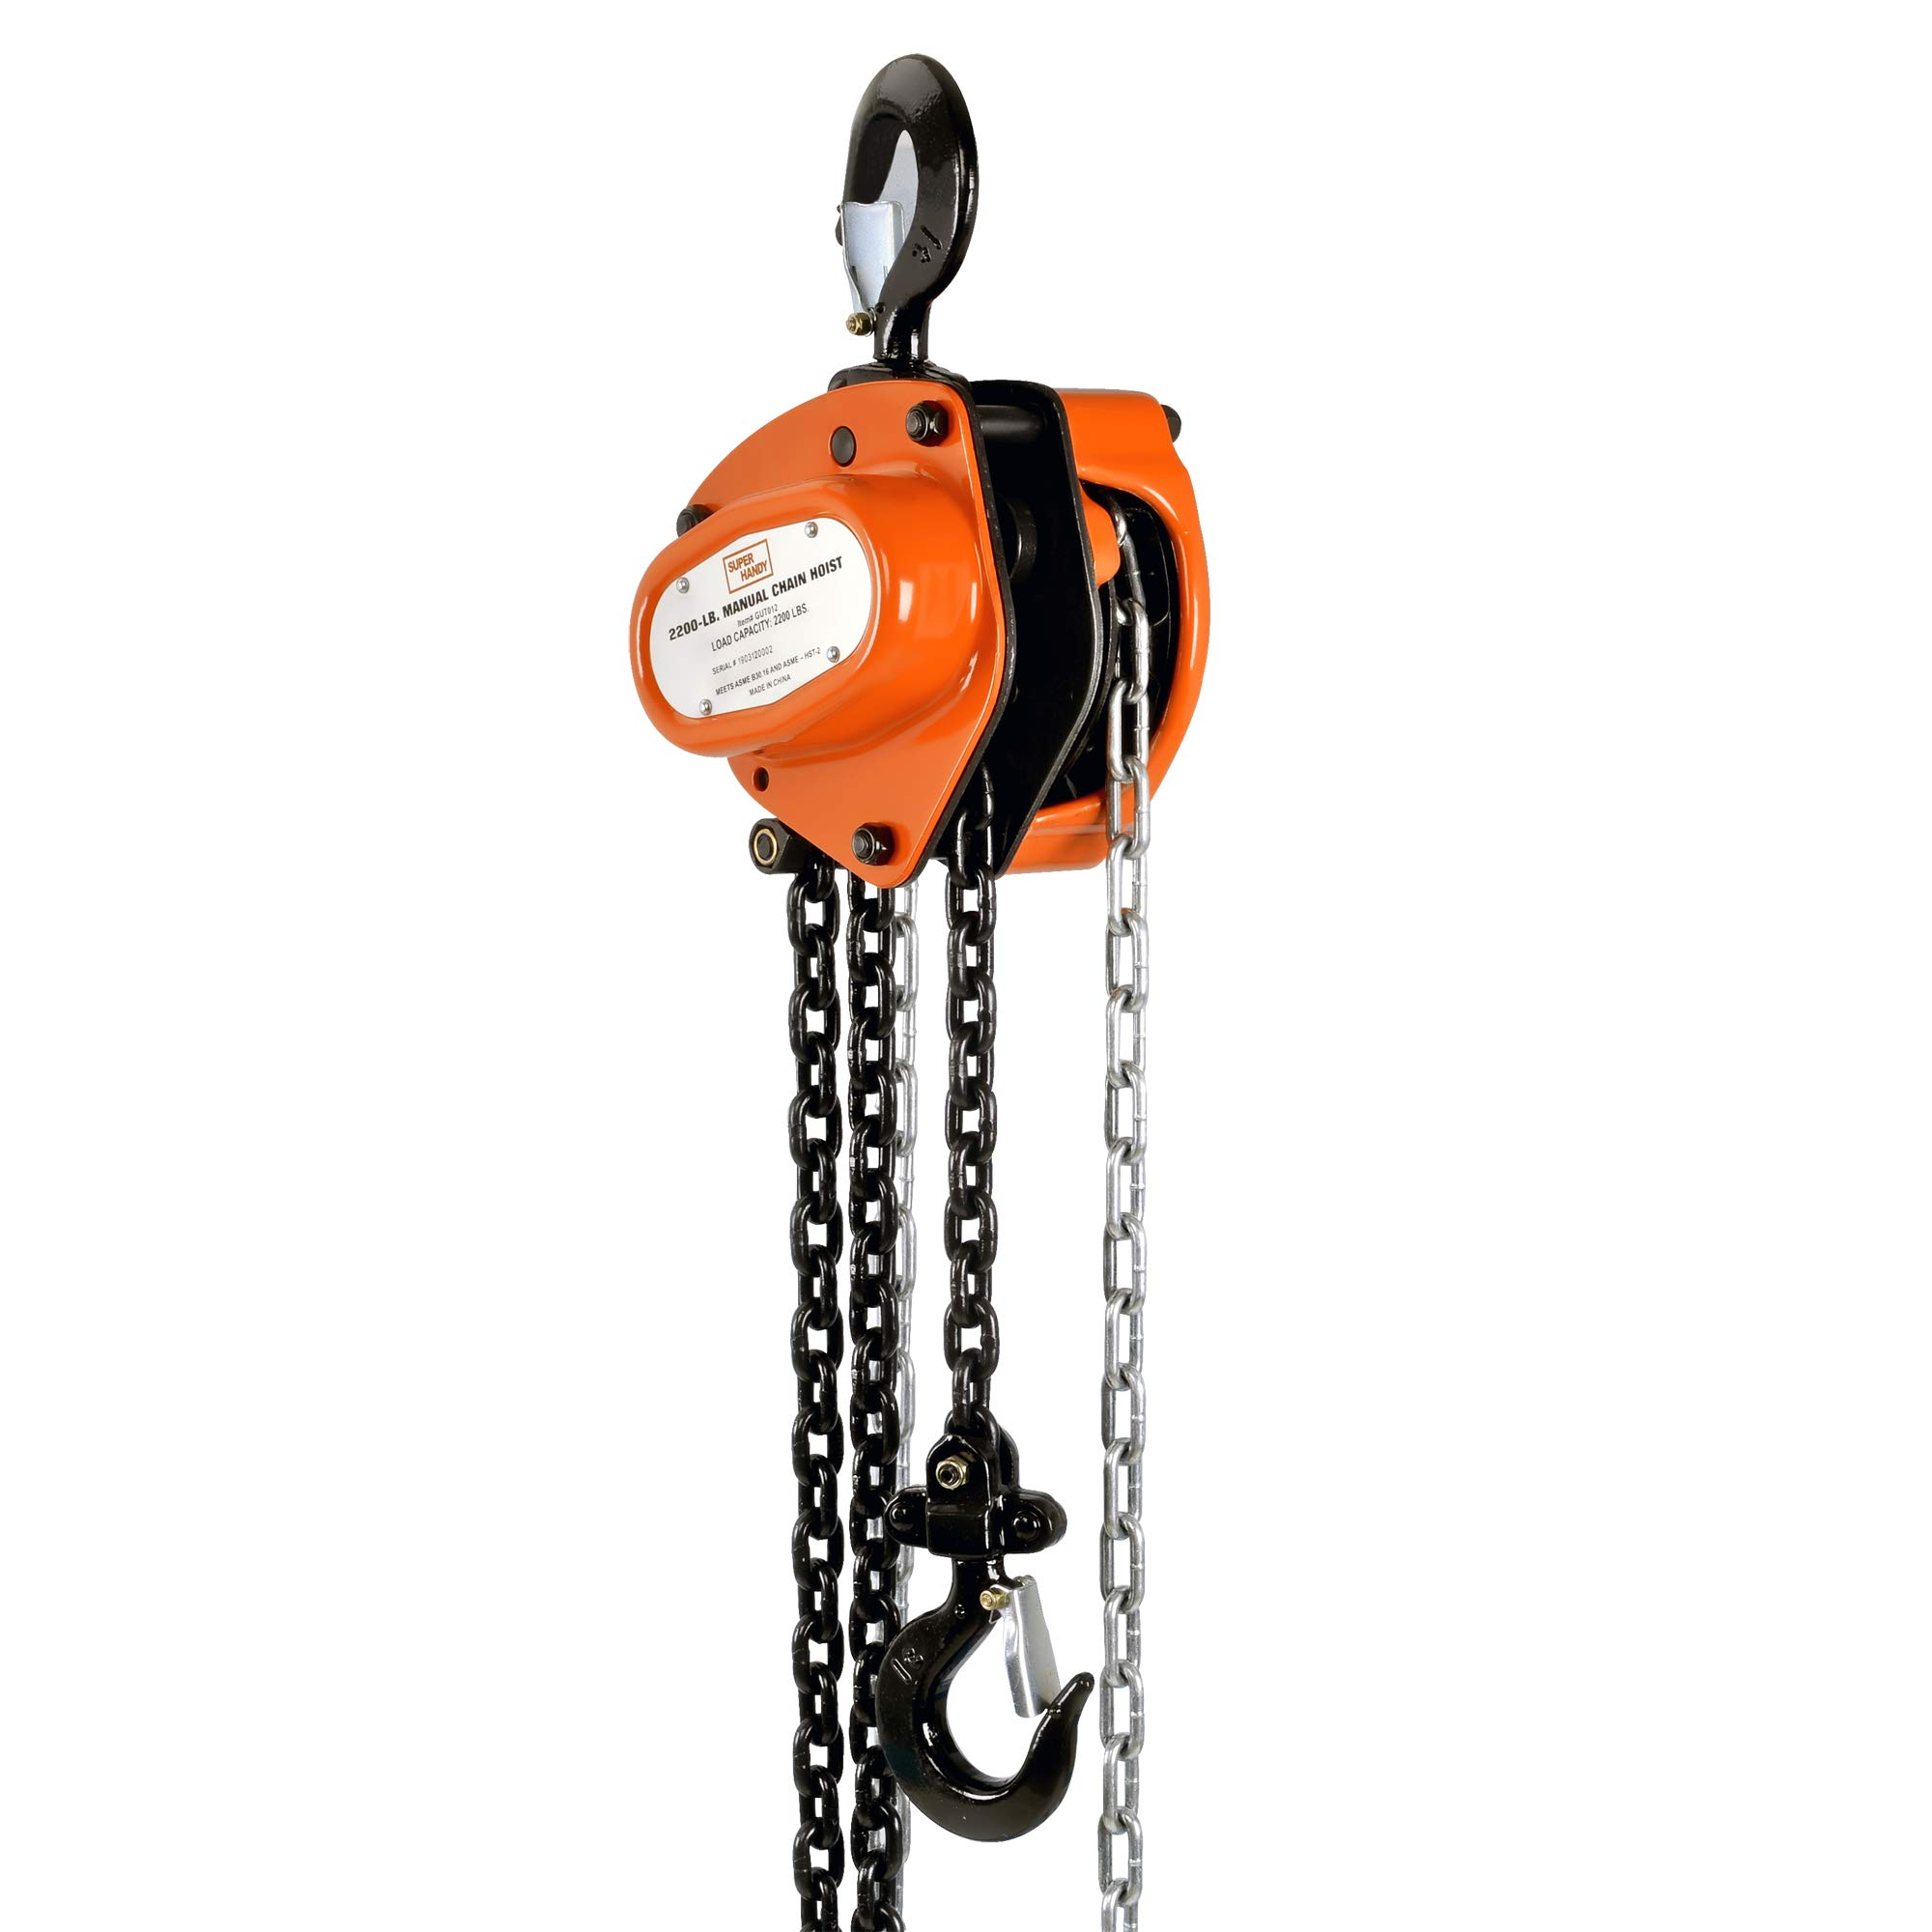 SuperHandy Manual Chain Block Hoist Come Along 1 TON 2200LBS Capacity 10FT Lift Heavy Duty Hooks Commercial Grade Steel for Lifting Pulling Construction Building Garages Warehouse Automotive Machinery by SuperHandy